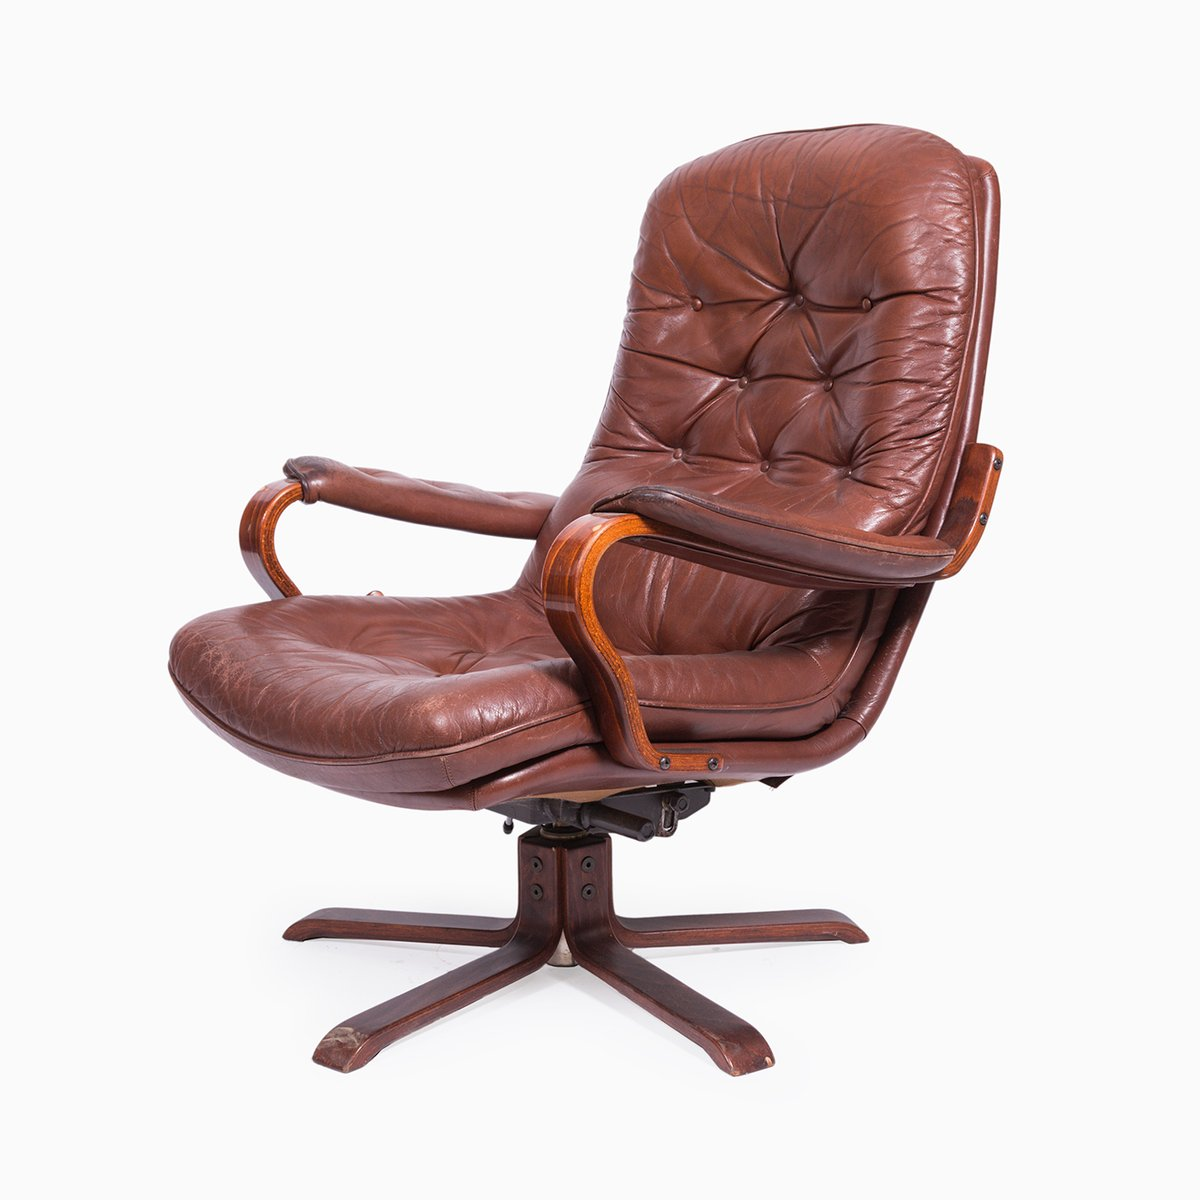 Vintage Swivel Leather Armchair, 1970s for sale at Pamono